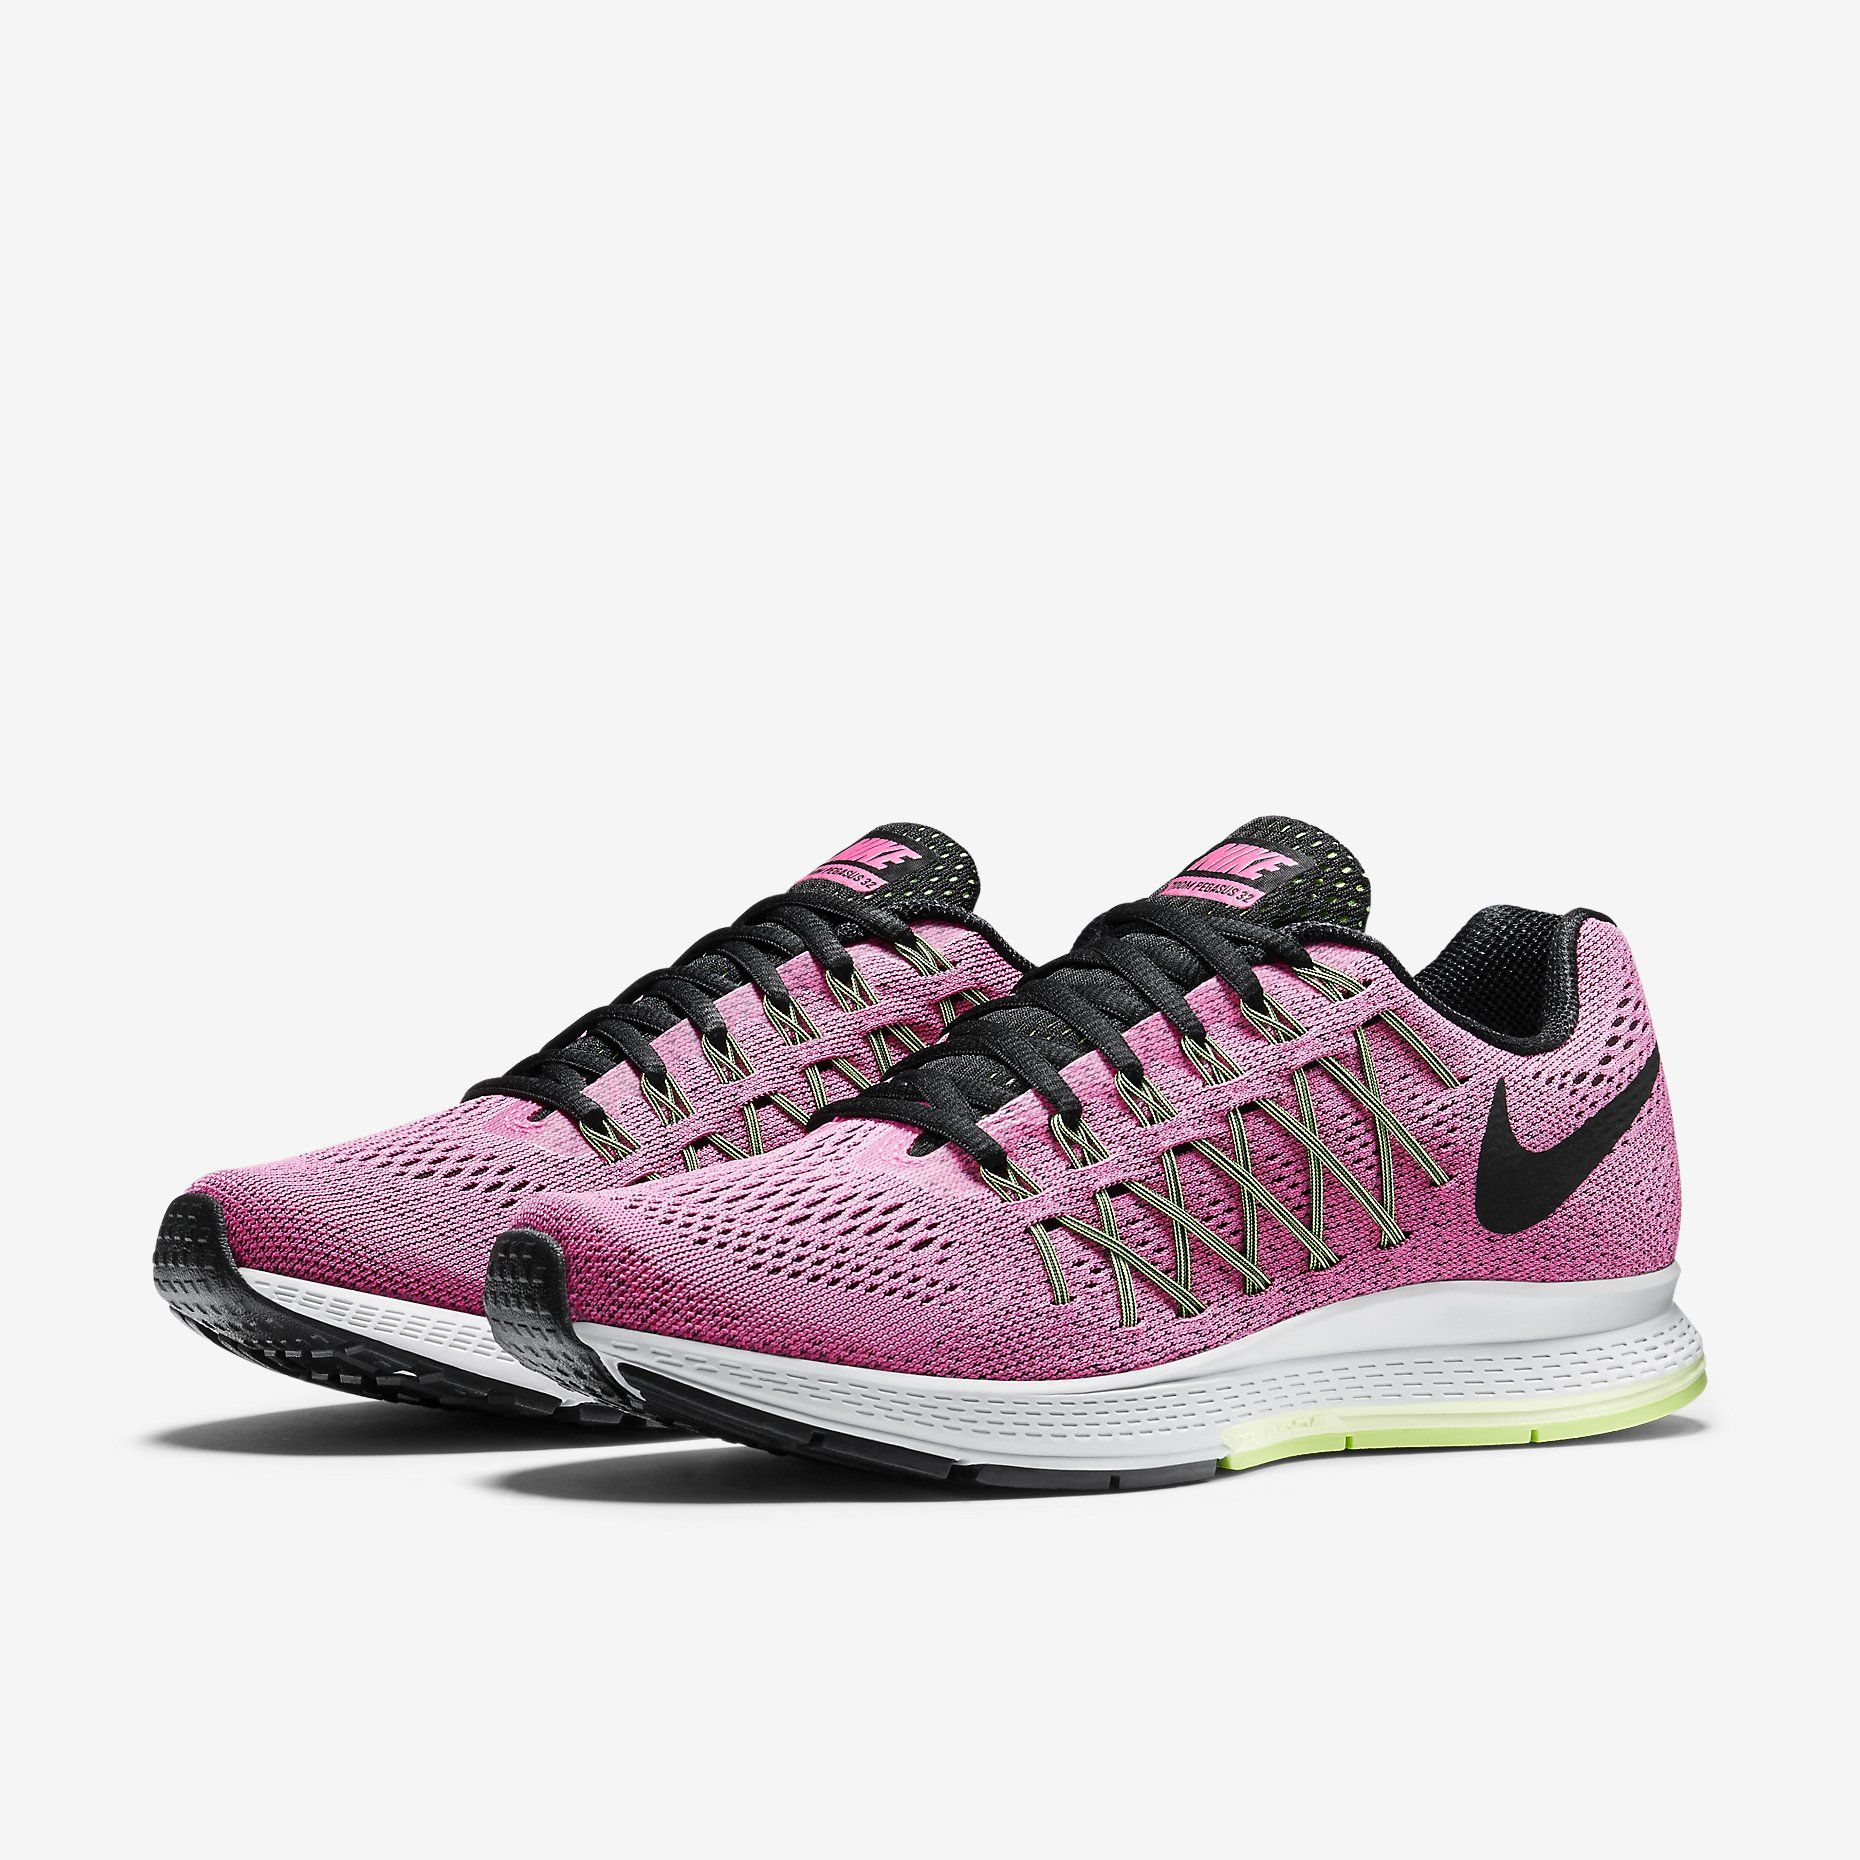 fdb316b5d Nike Air Zoom Pegasus 32 Women s Running Shoe. Nike Store